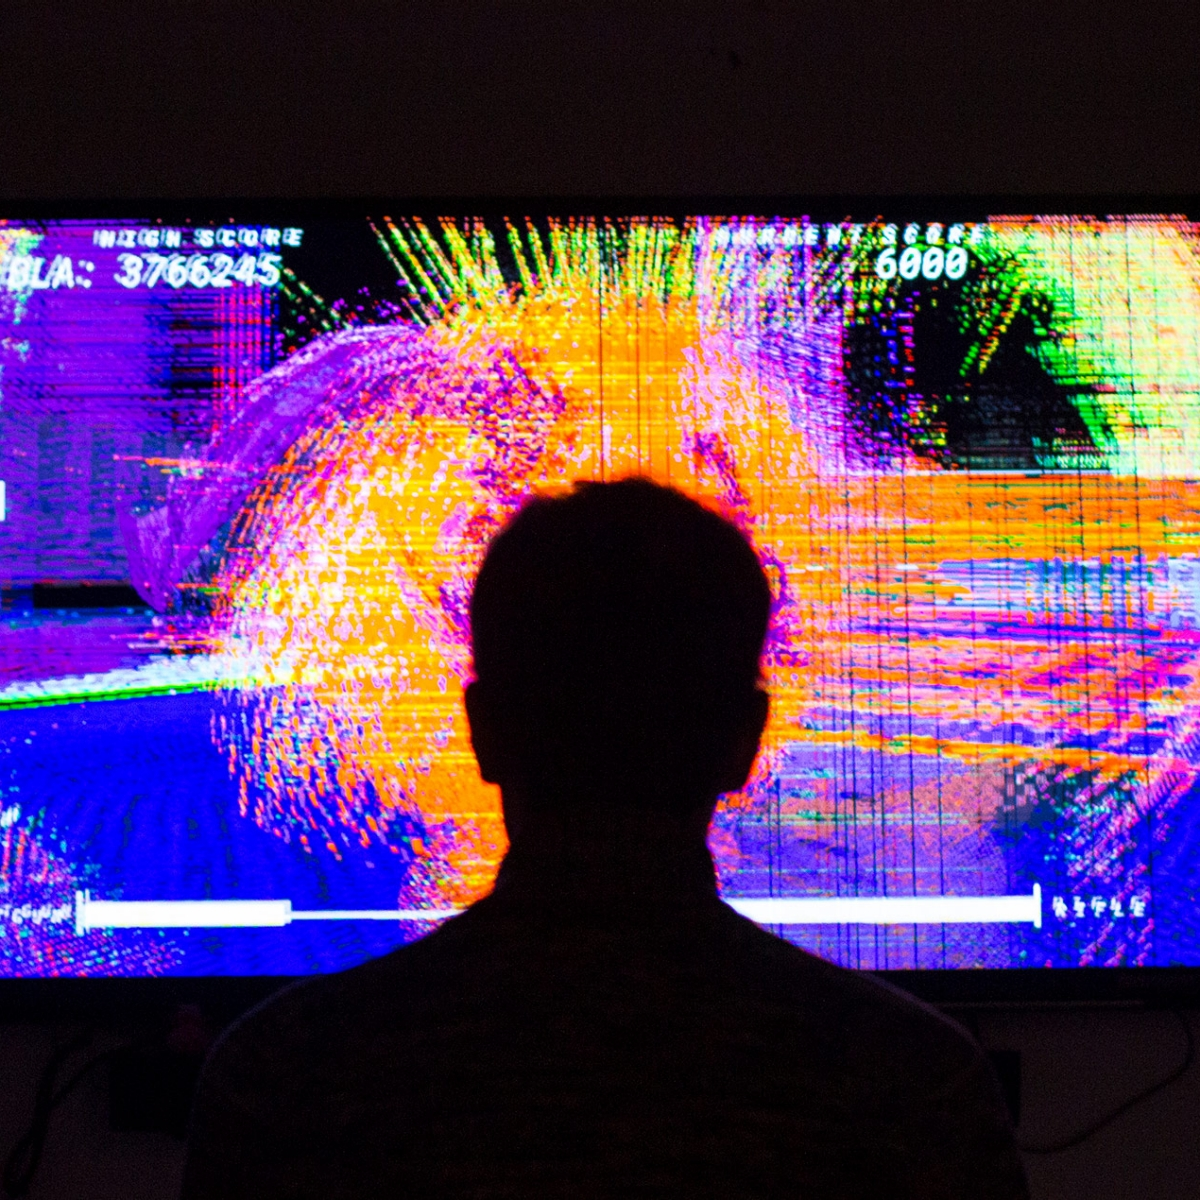 Person stands in front of vibrant screen.